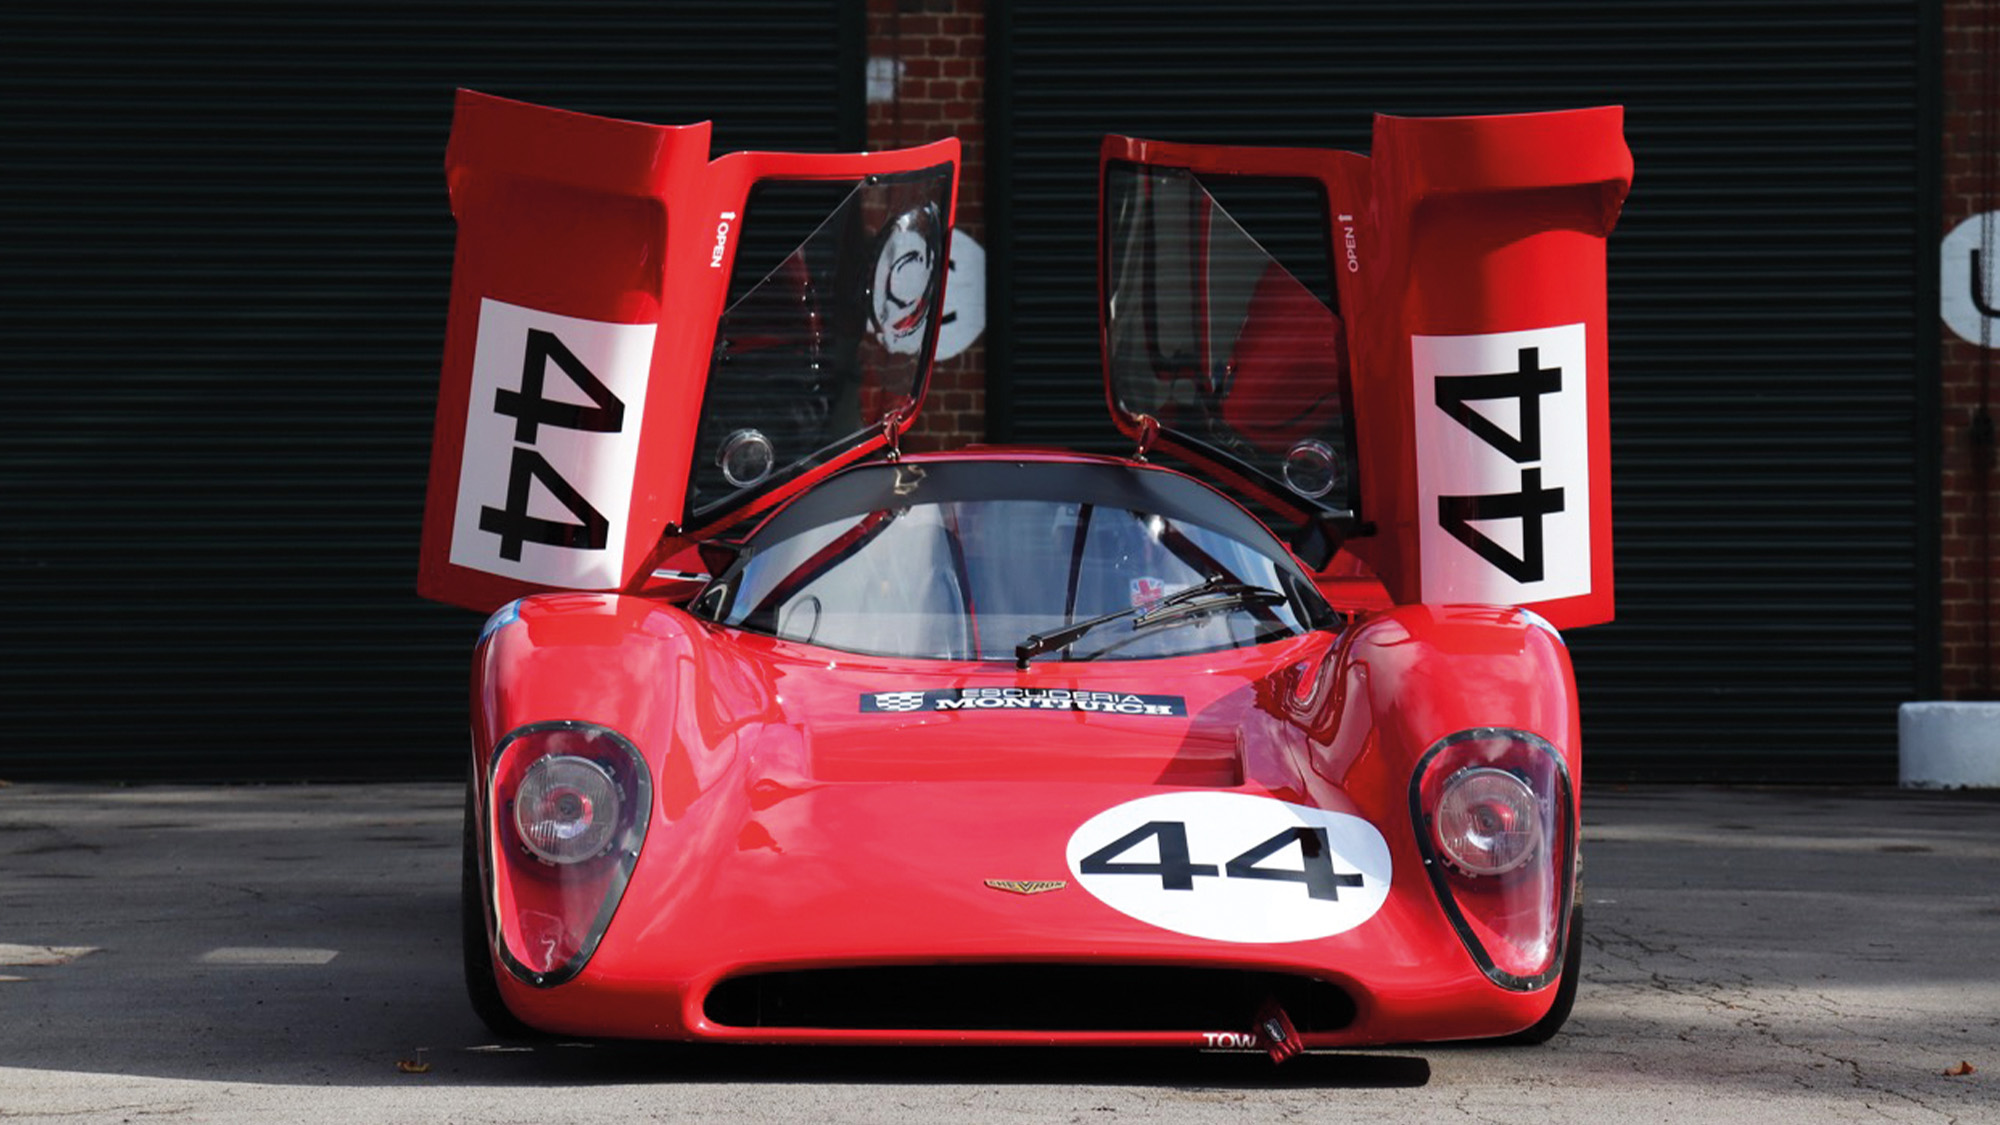 Chevron B16 raced at Le Mans in 1970